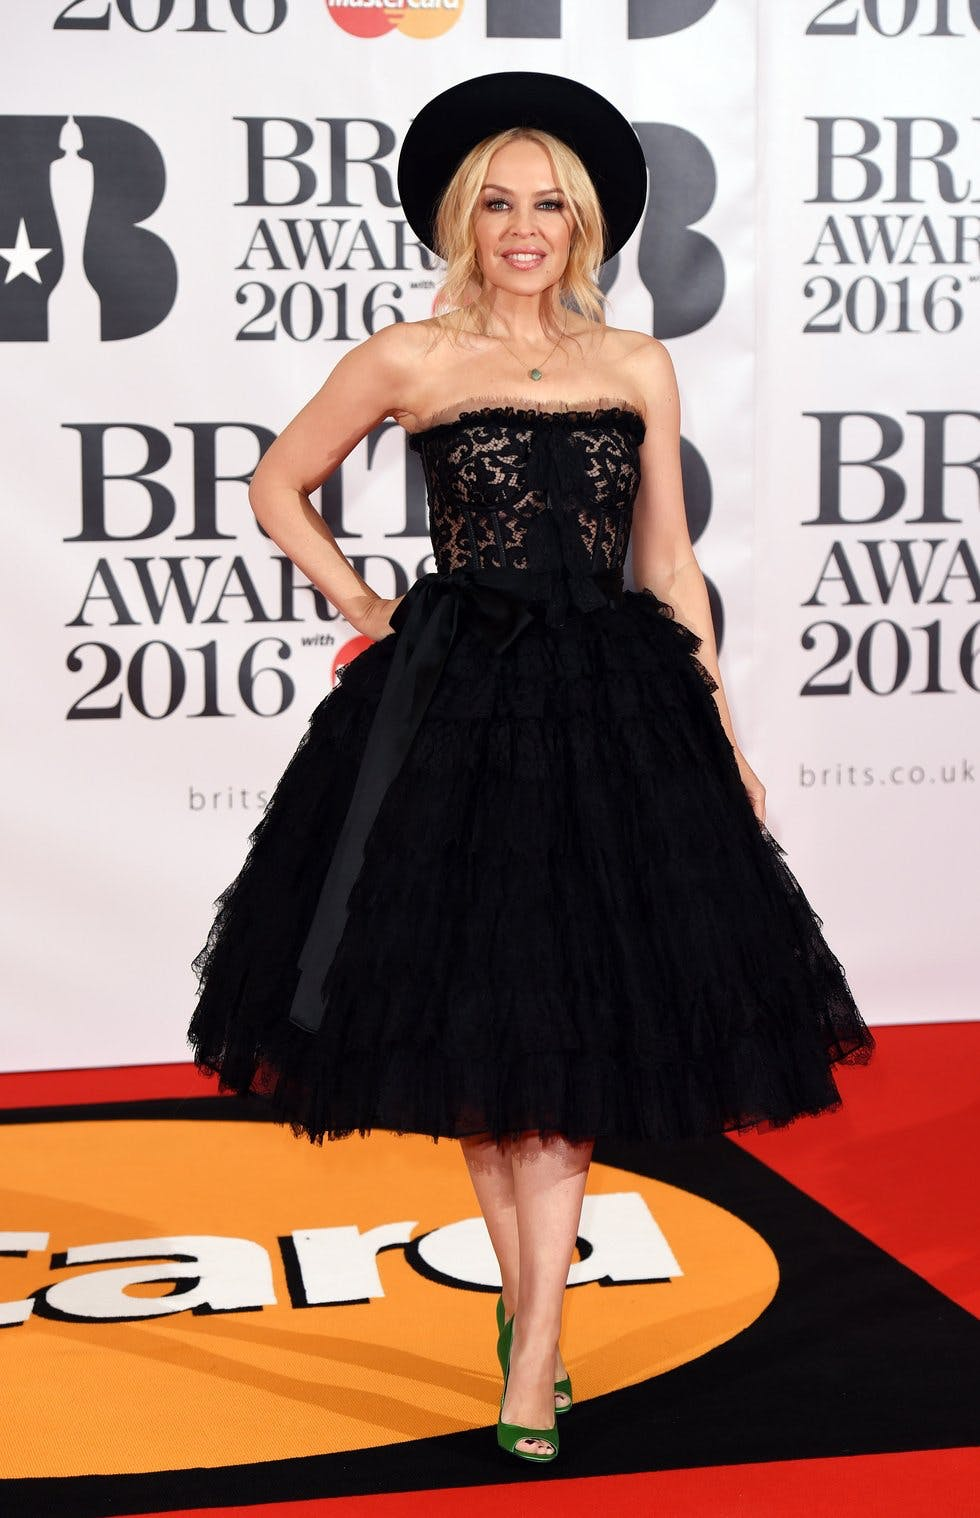 Kylie tops off a full-skirted black Dolce and Gabbana dress with a black  trilby at the BRIT Awards in London. fcff418a9